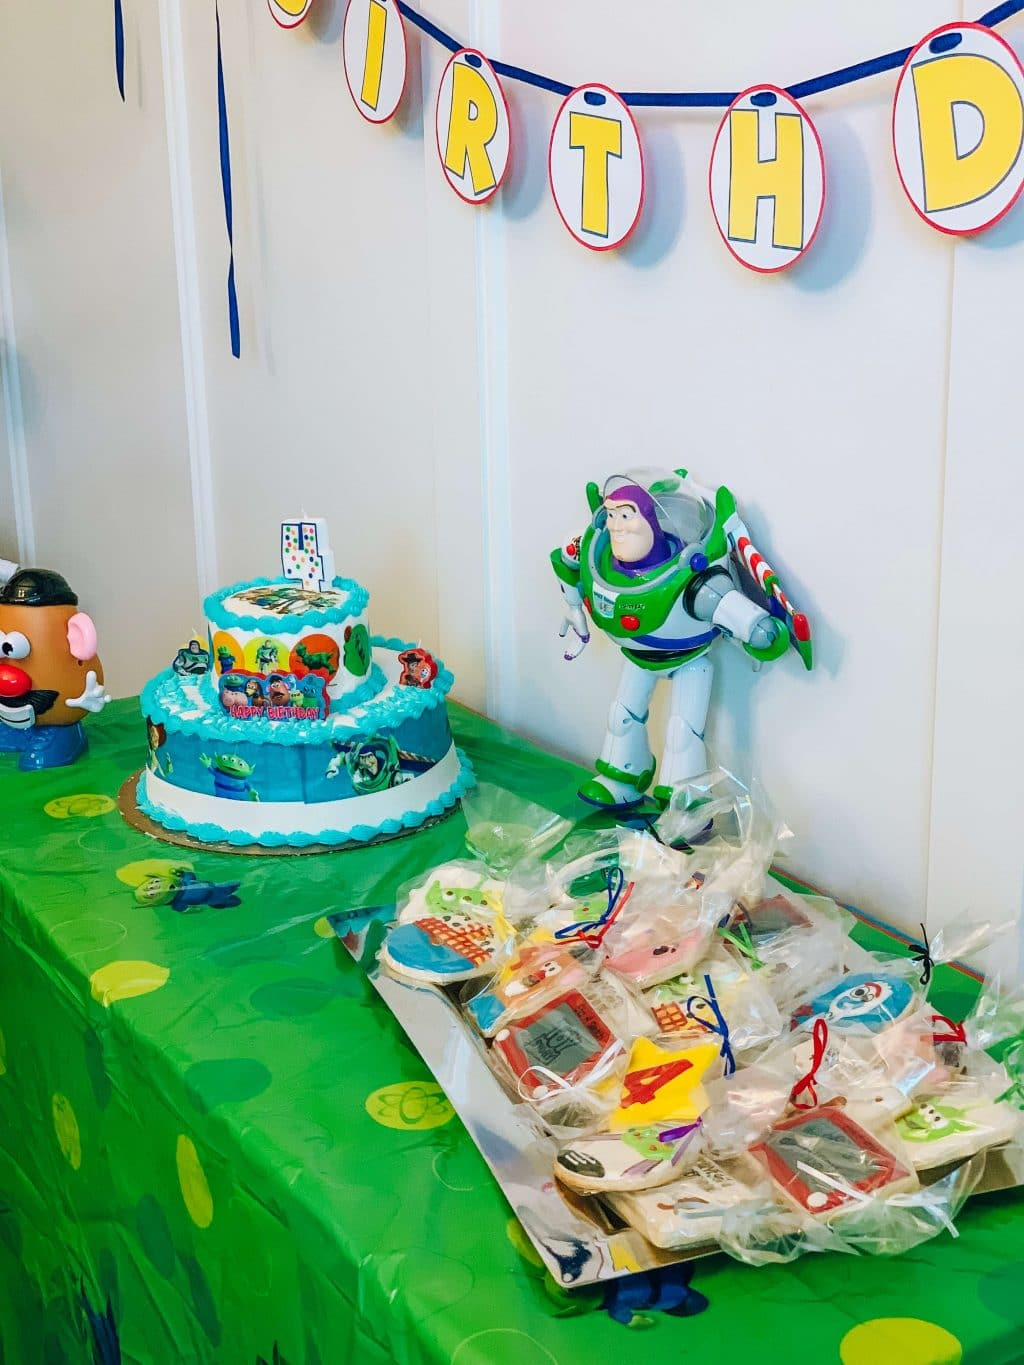 Toy Story 4 Party, Easy Birthday Party, Toy Story 4 Favor ideas, Stilettos and Diapers